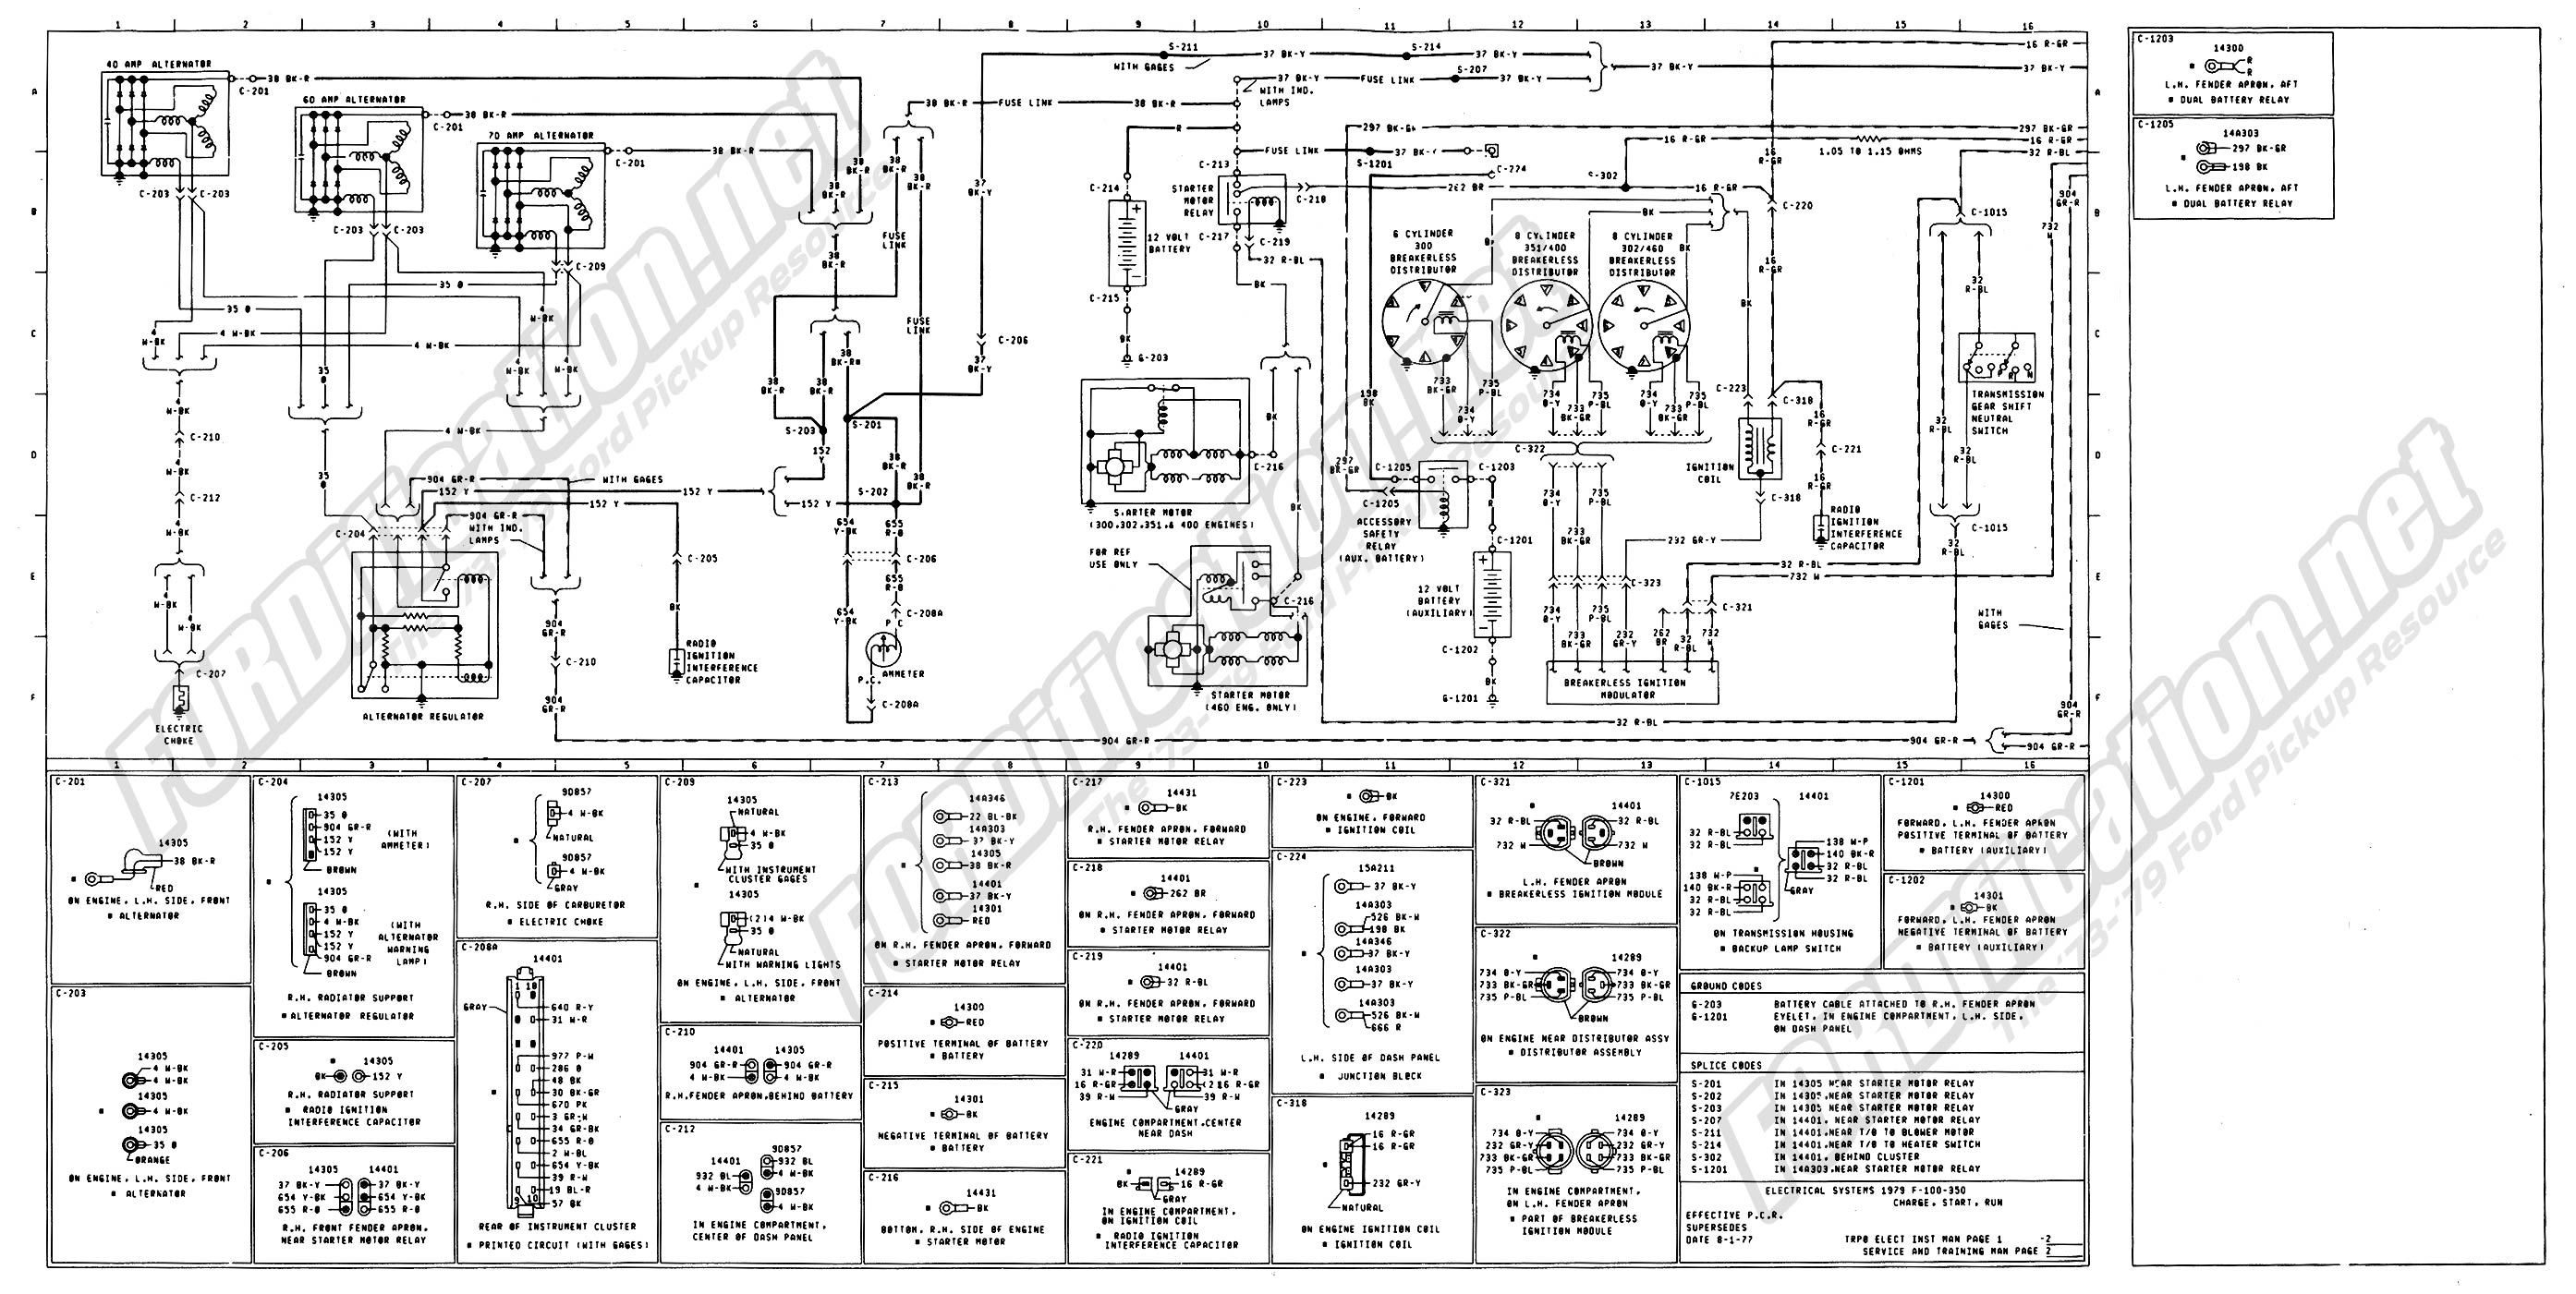 1978 Ford Truck Wiring Diagram Diagrams 1983 Mustang Alternator Free Picture F100 Engine Image For User 1985 1987